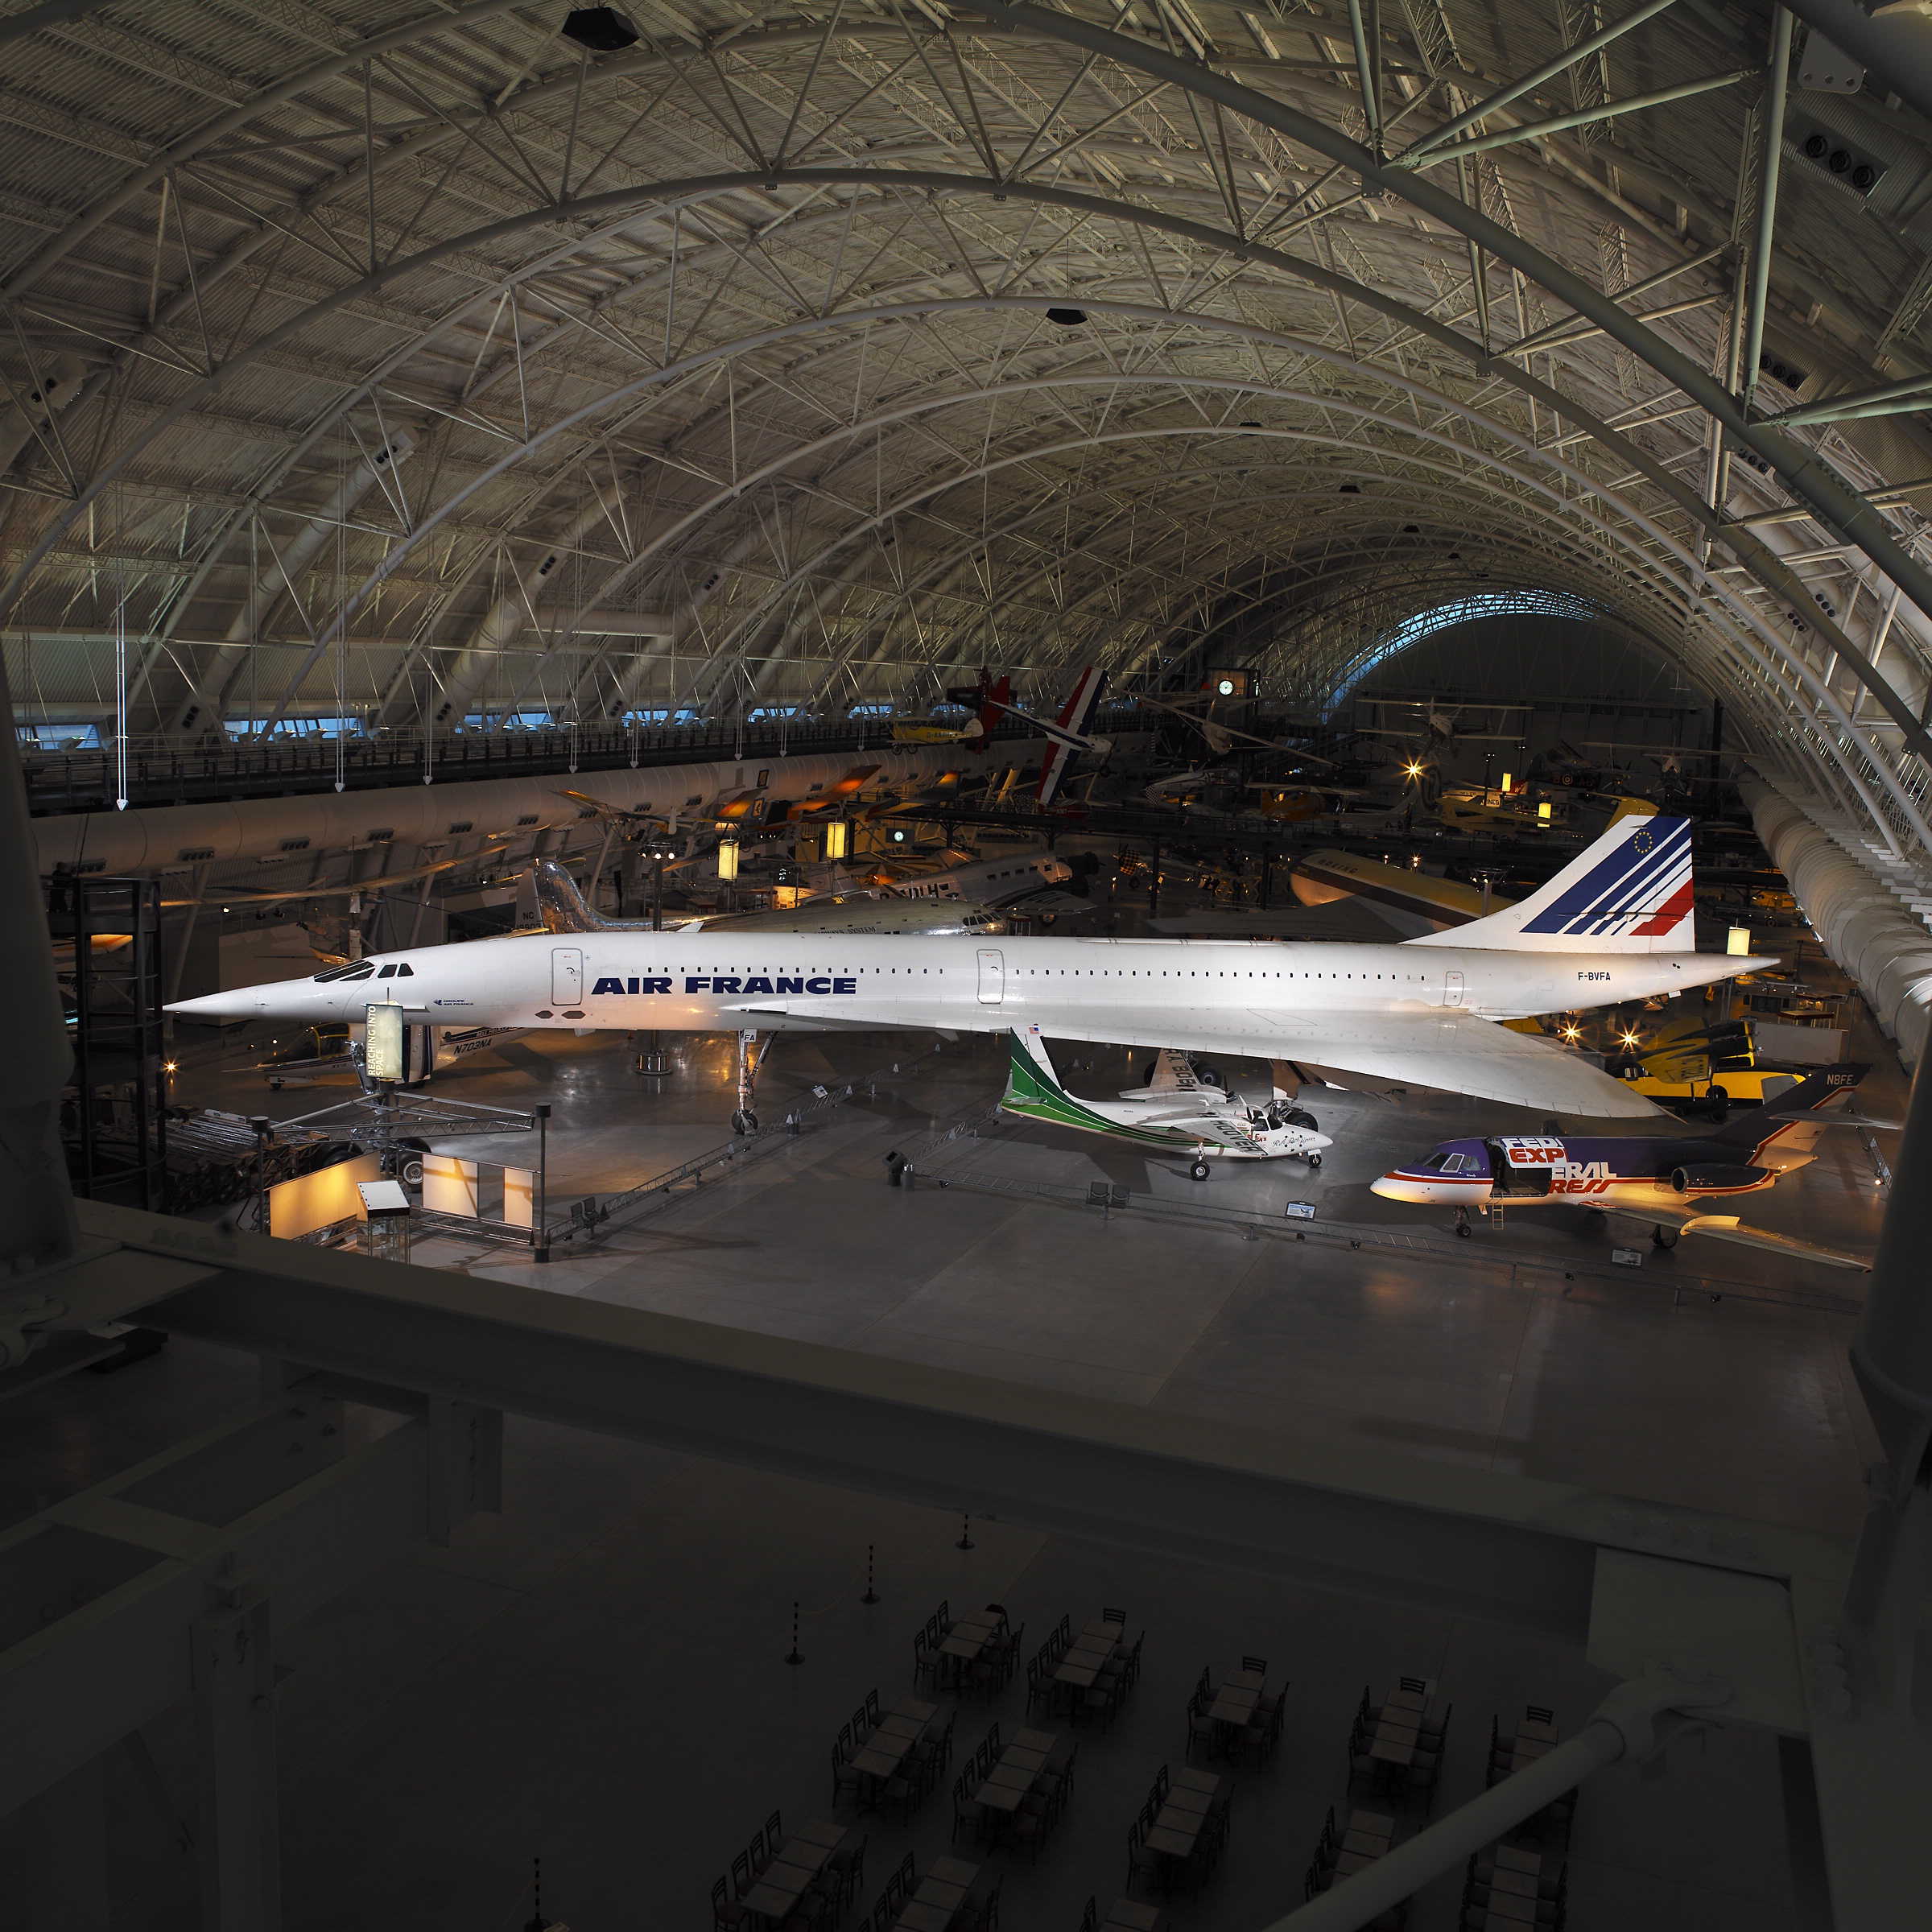 Concorde at the Udvar-Hazy Center. National Air and Space Museum, Smithsonian Institution.